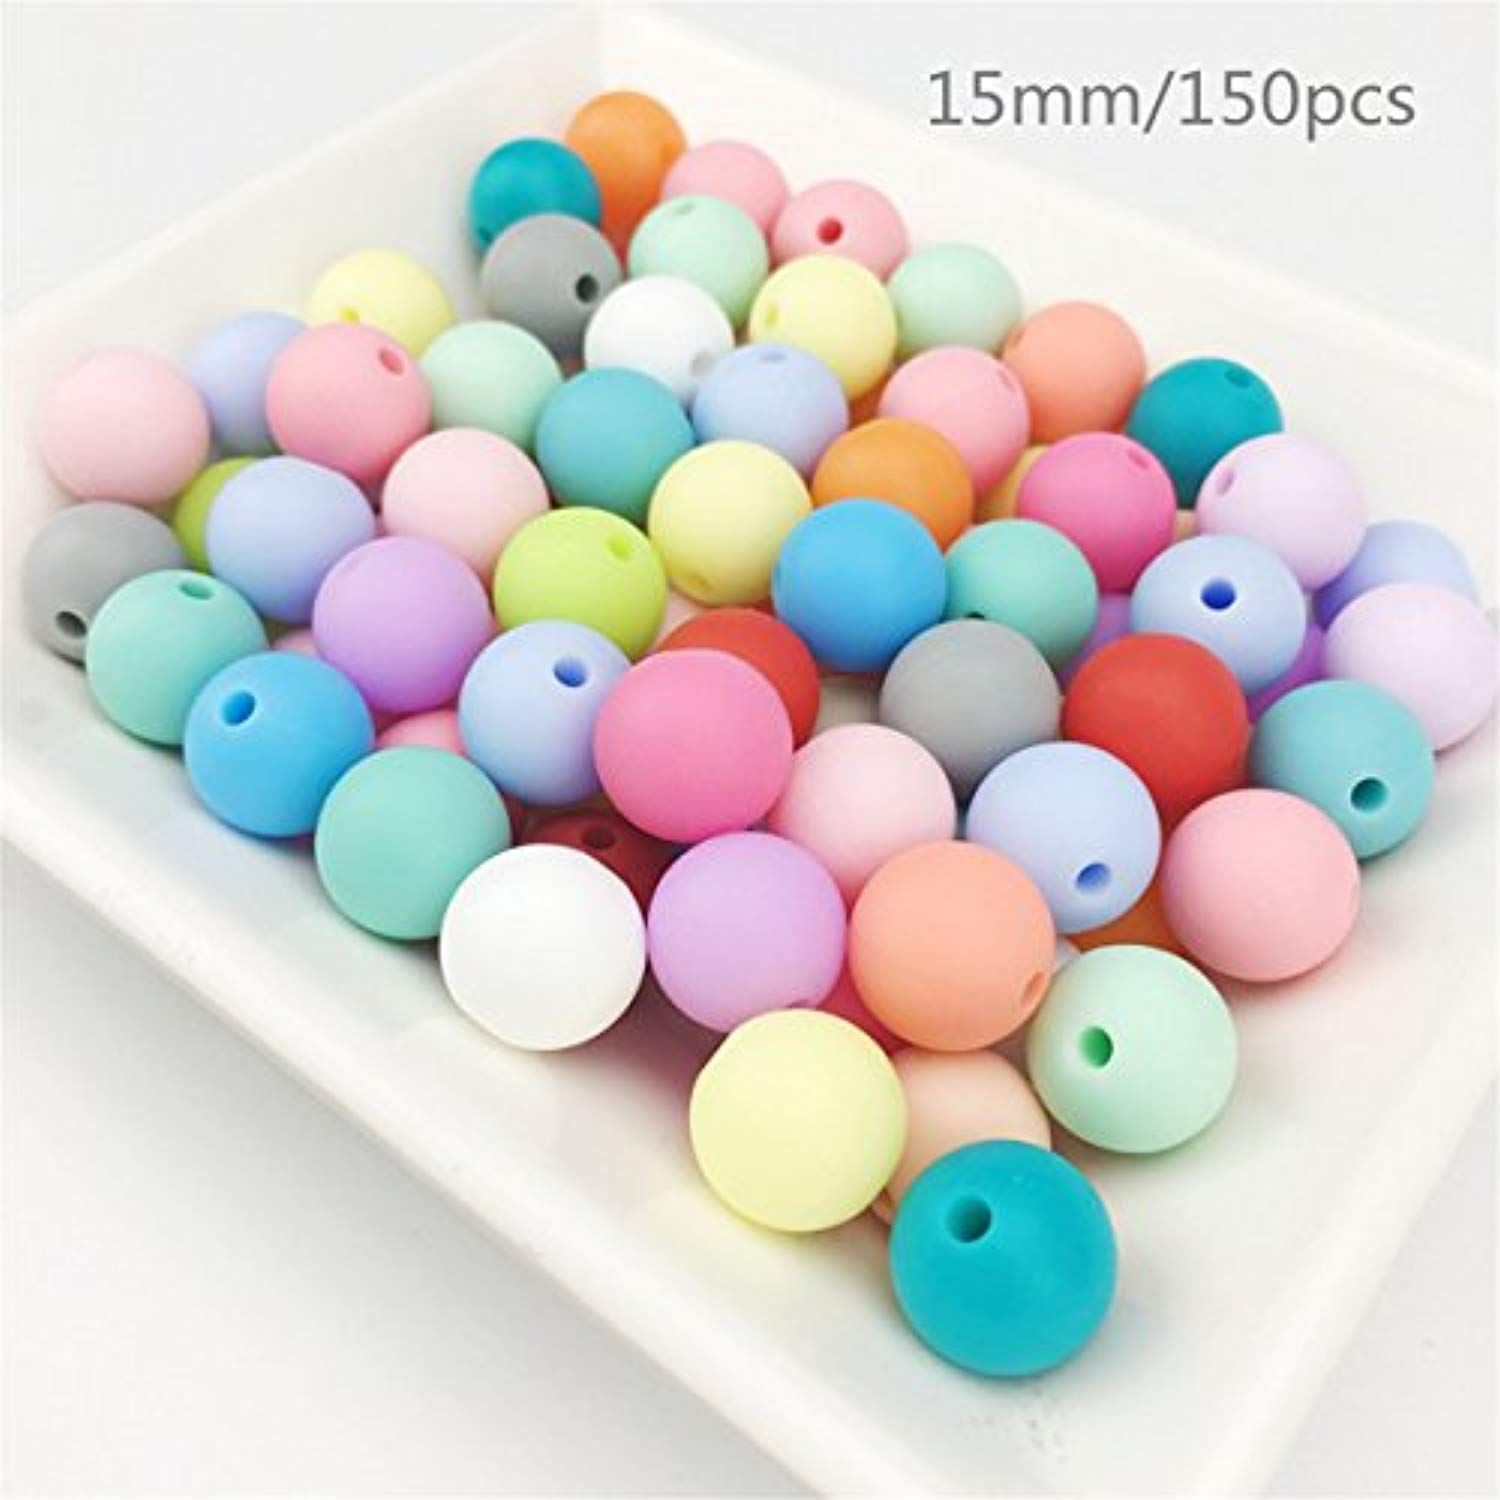 150pc 15mm Silicone Teething Beads Round Loose Organic Nusring Baby Chew Colorfu